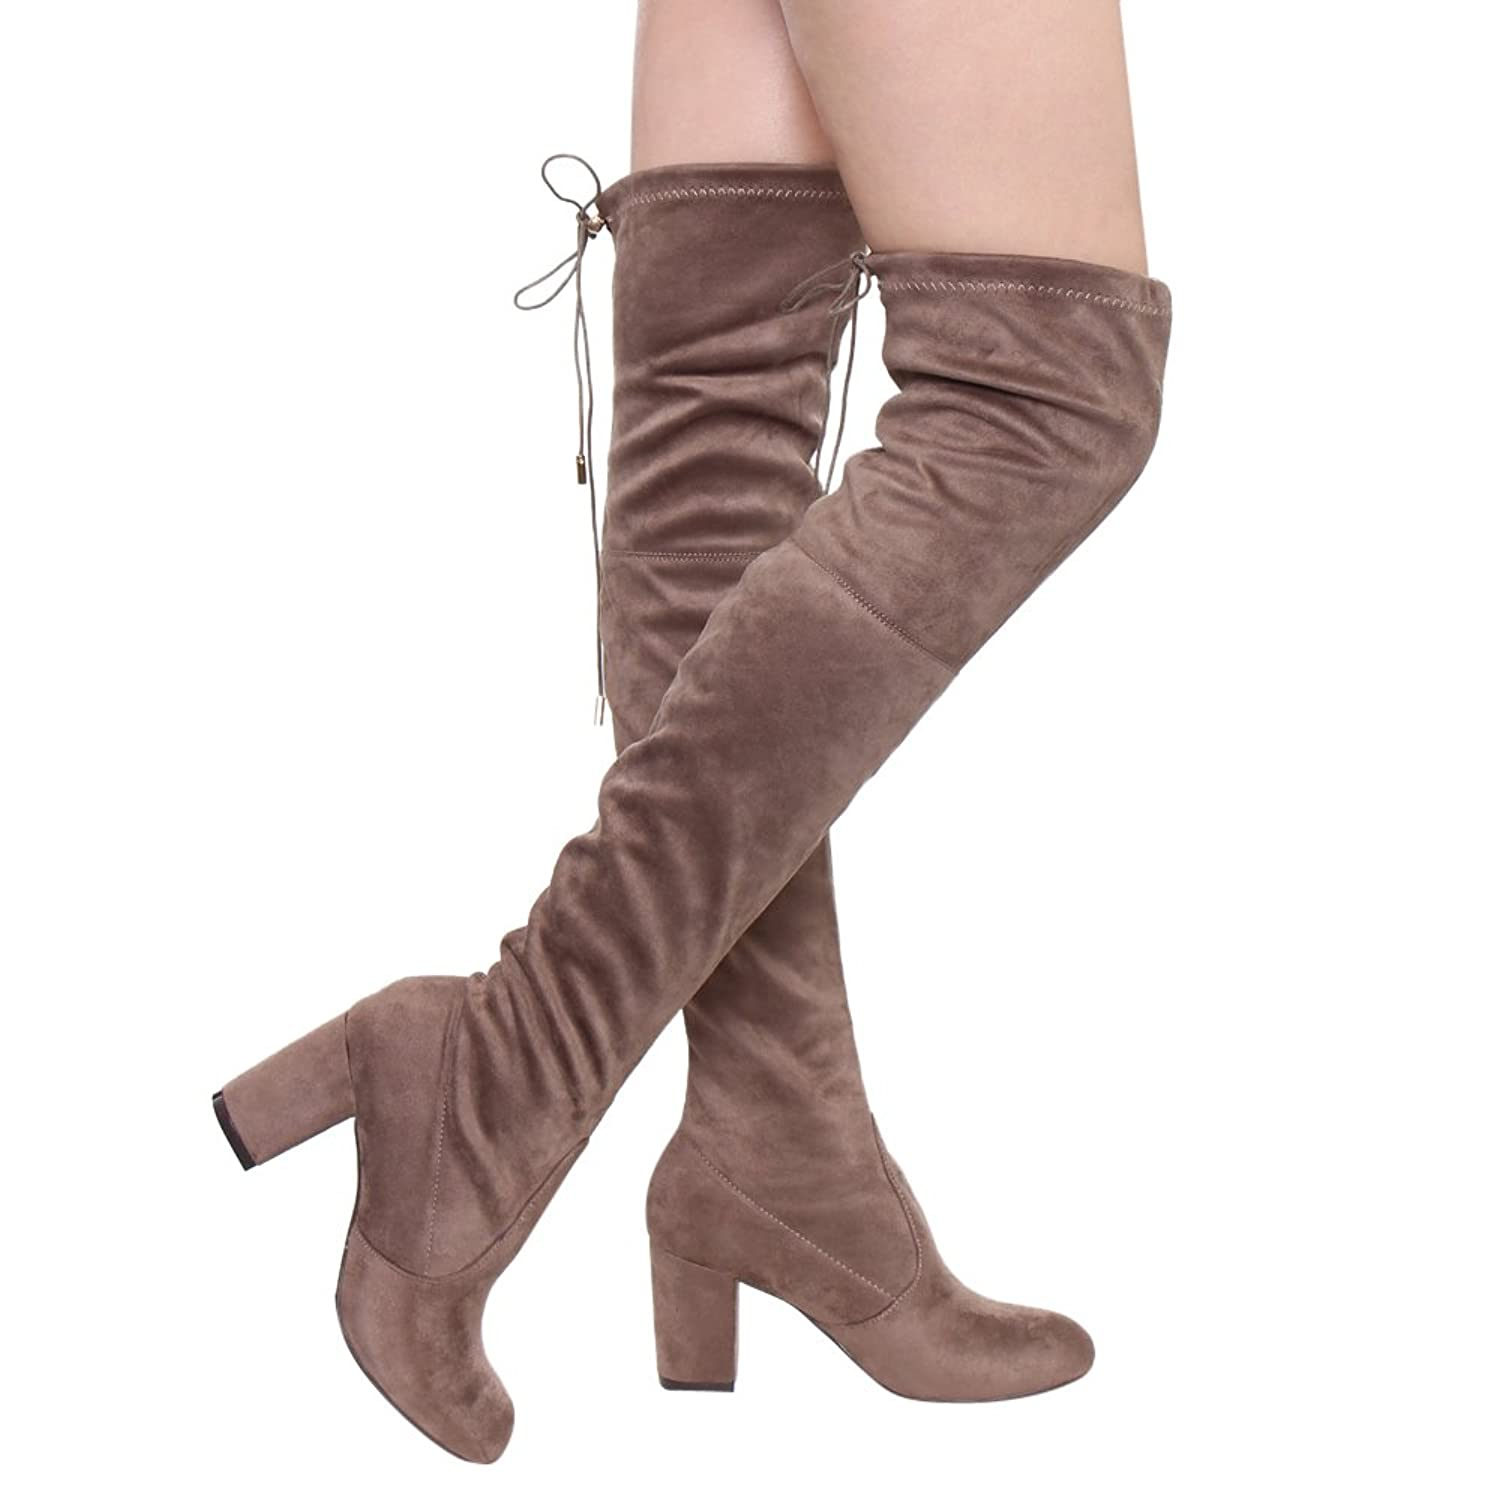 8c99bb2396f Details about ShoBeautiful Women's Thigh High Boots Stretchy Over The Knee  Chunky Block Heel